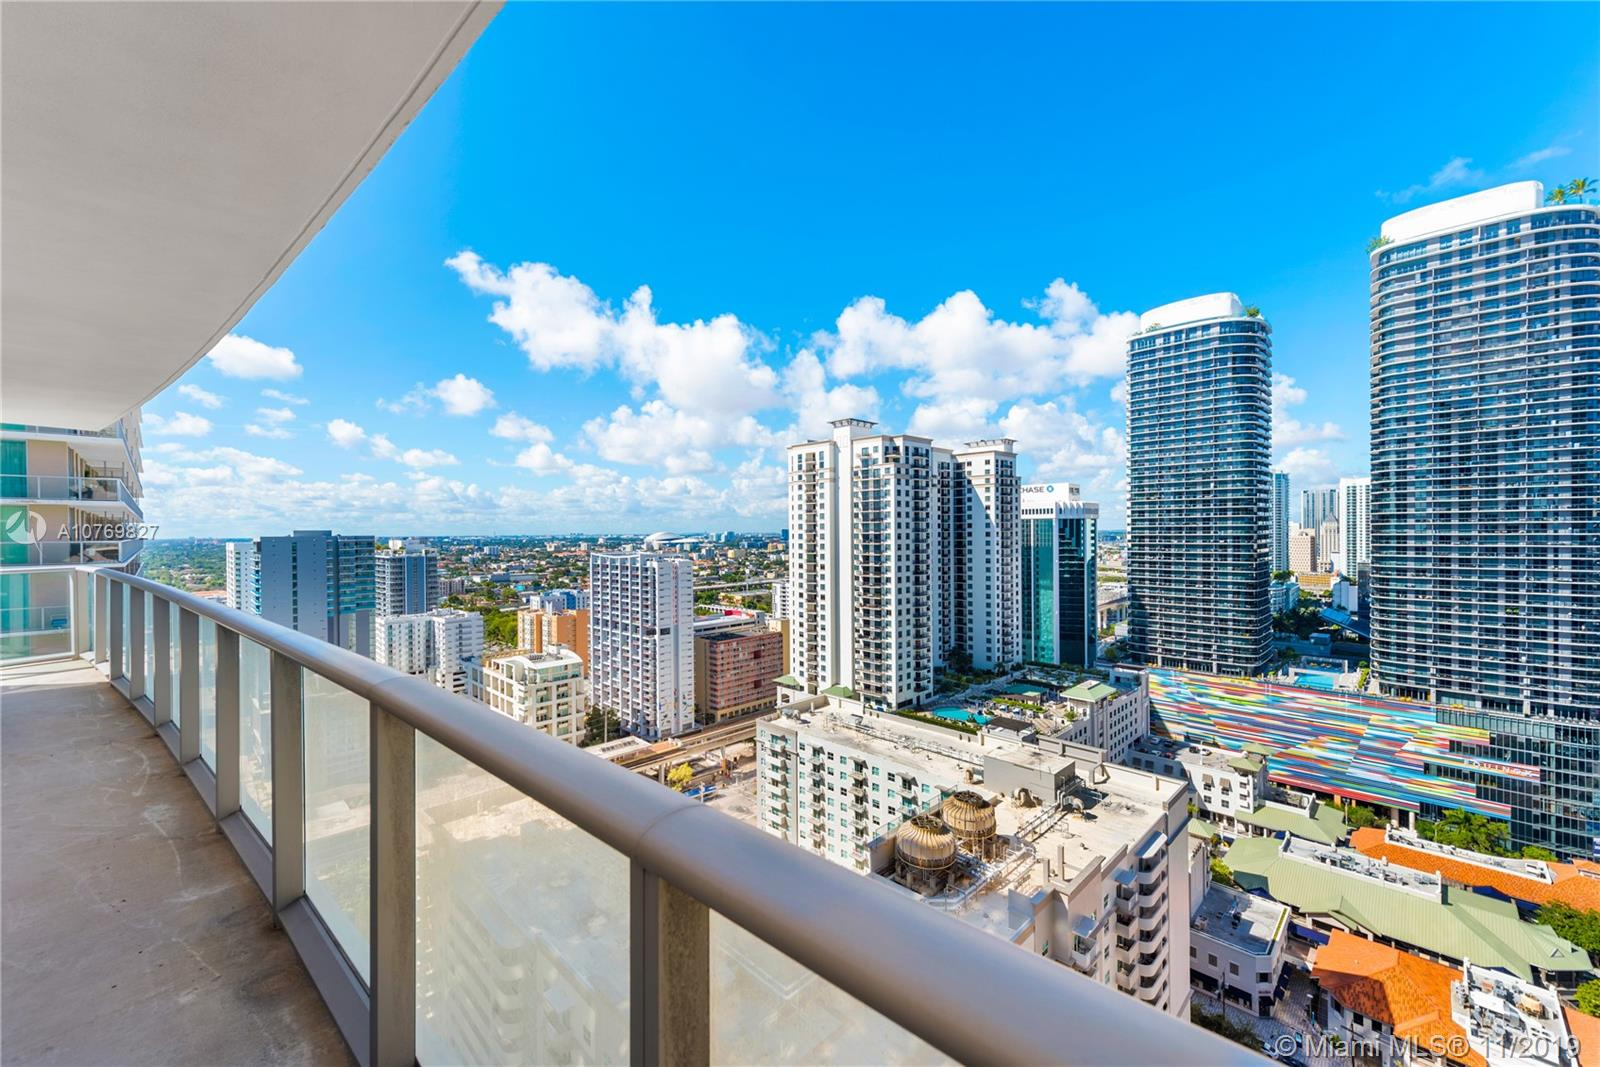 Best priced 2 bed, 2 bath unit at Millecento with low HOA fees! This 2015 condo created by Carlos Ott and designed by Pininfarina features a spacious floor-plan, open skyline views with lots of natural light, impact resistant windows and doors, a large balcony and Italian cabinetry. 1 Assigned Parking on 5th Floor and Valet Parking available for guests or second spot. Resort Style Amenities include a rooftop pool, larger pool on 9th Floor, Fitness Center, Kids Room, Club Room with Billiards table and room to entertain, theatre and sauna. Enjoy the Brickell lifestyle - centrally located to restaurants, shops, supermarkets, Mary Brickell Village, Brickell City Centre, Metrorail & Metromover. Rented until 6/30/2020. Building has reserves!